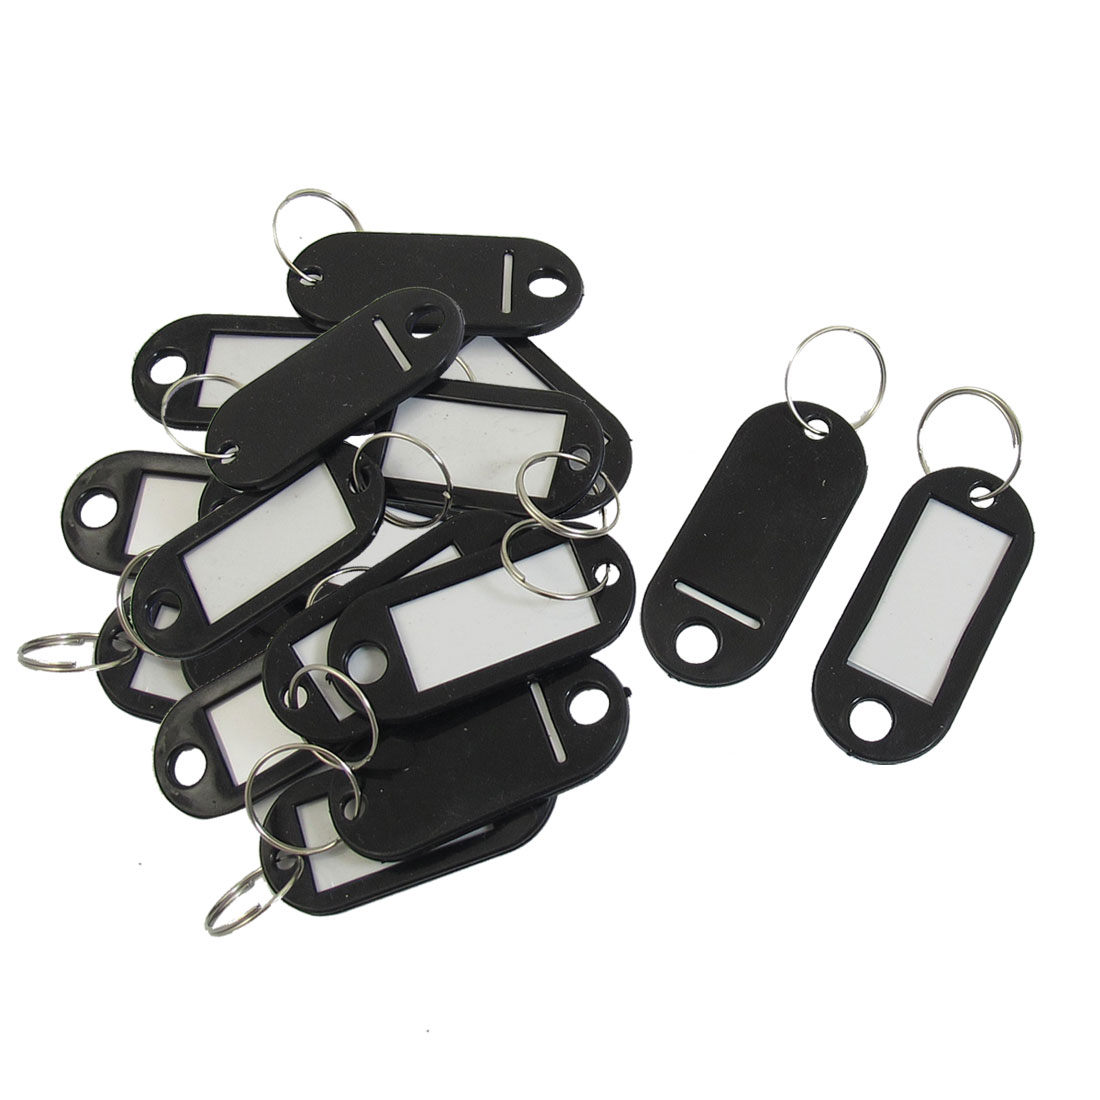 20 Pcs Key ID Label Tags Split Ring Keyring Keychain Black